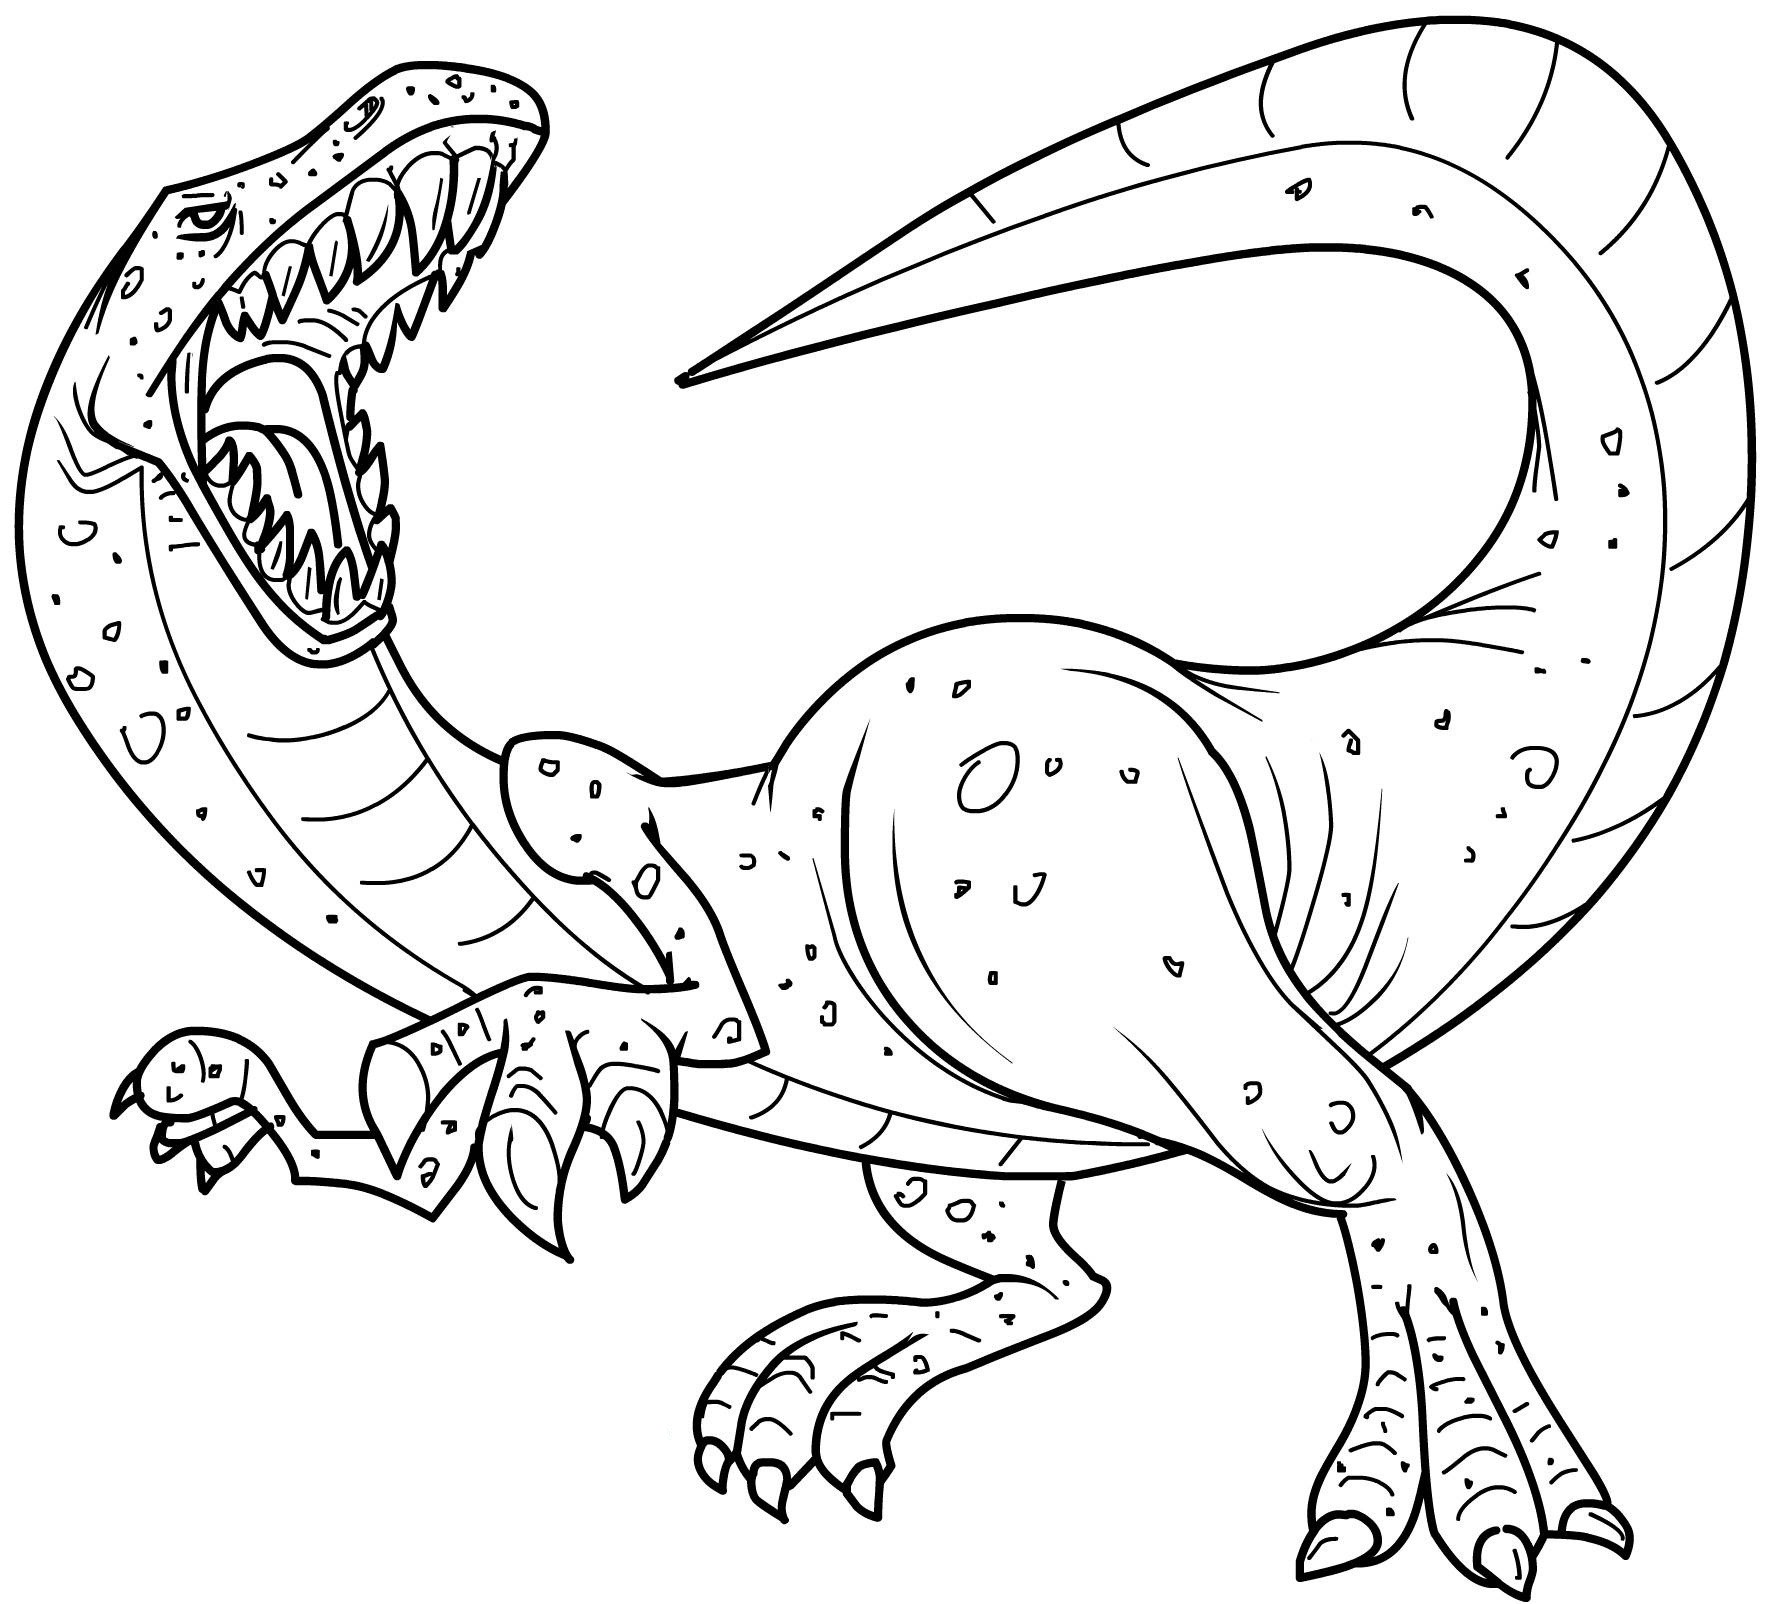 kids coloring pages dinosaurs - photo#2